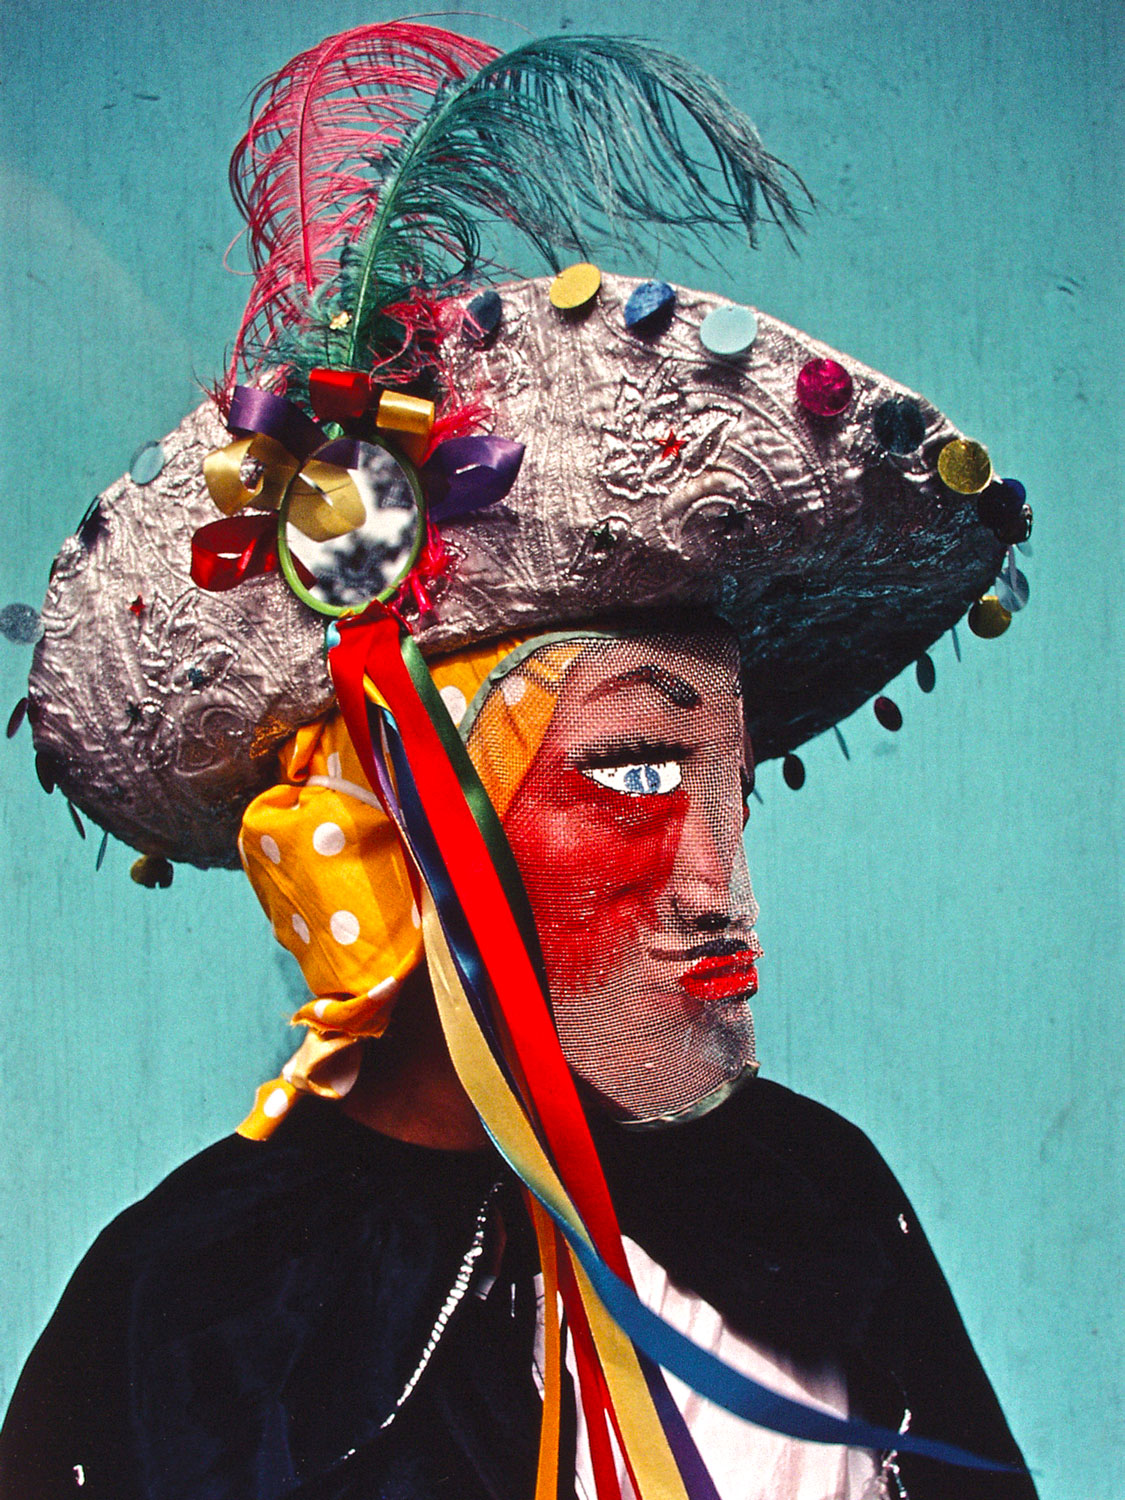 Mask of St James the Apostle, Loíza (1980), by Héctor Méndez Caratini. Image courtesy El Museo Del Barrio